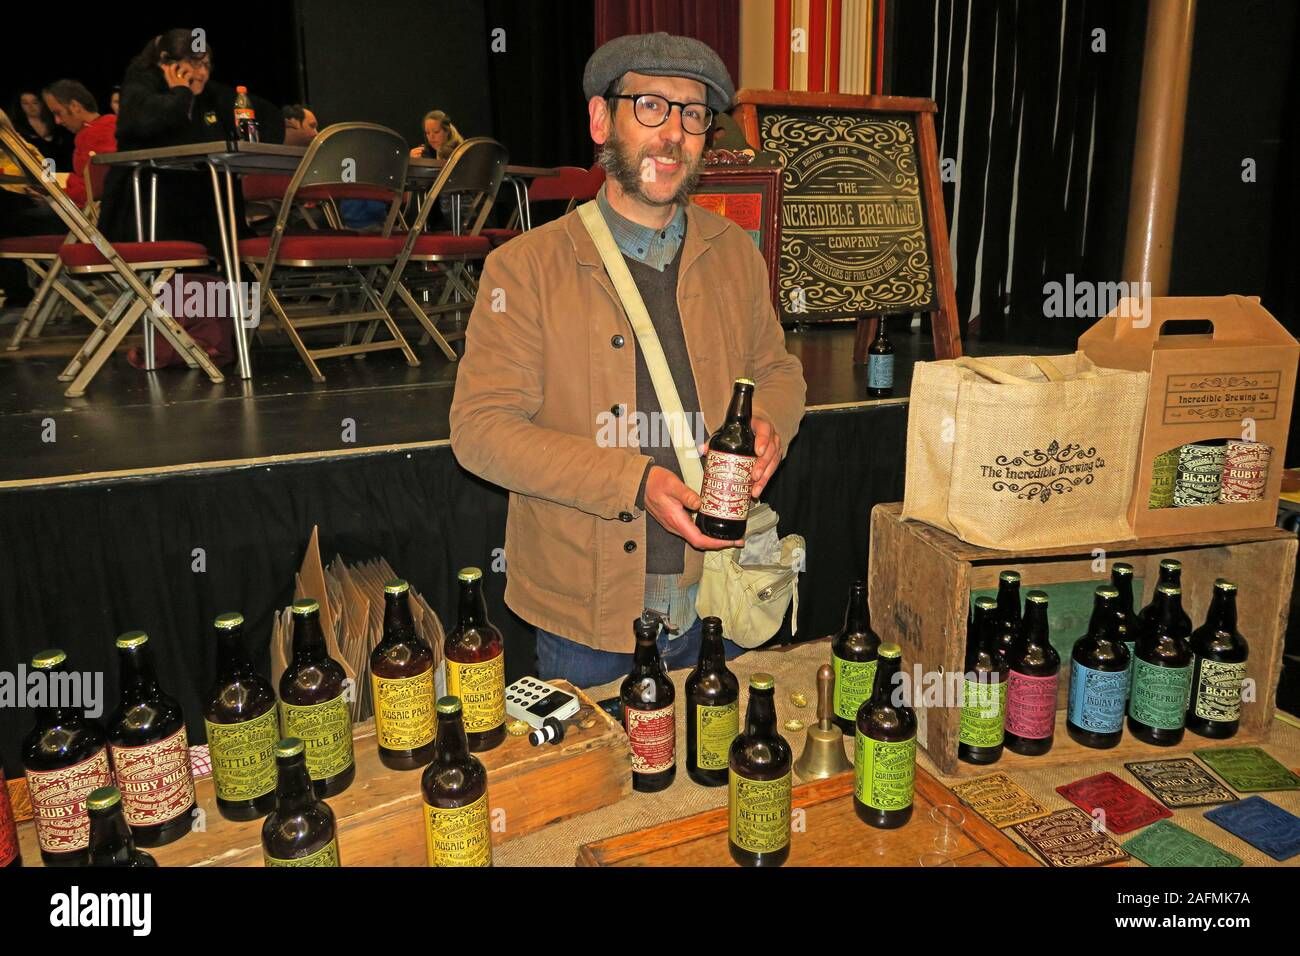 HotpixUK,@HotpixUK,GoTonySmith,Somerset,SDC,Sedgemoor,South West England,England,UK,South West,town,TA6,Food and Drink,festival,cider,food stalls,stalls,drink stalls,tastings,organic,Bridgwater town hall,townhall,venue,Bridgwater Town Team,ale,beer,The Incredible Brewing Company,Incredible Brewing Company,brewery,brewing,holding a bottle,bottled,bottled beer